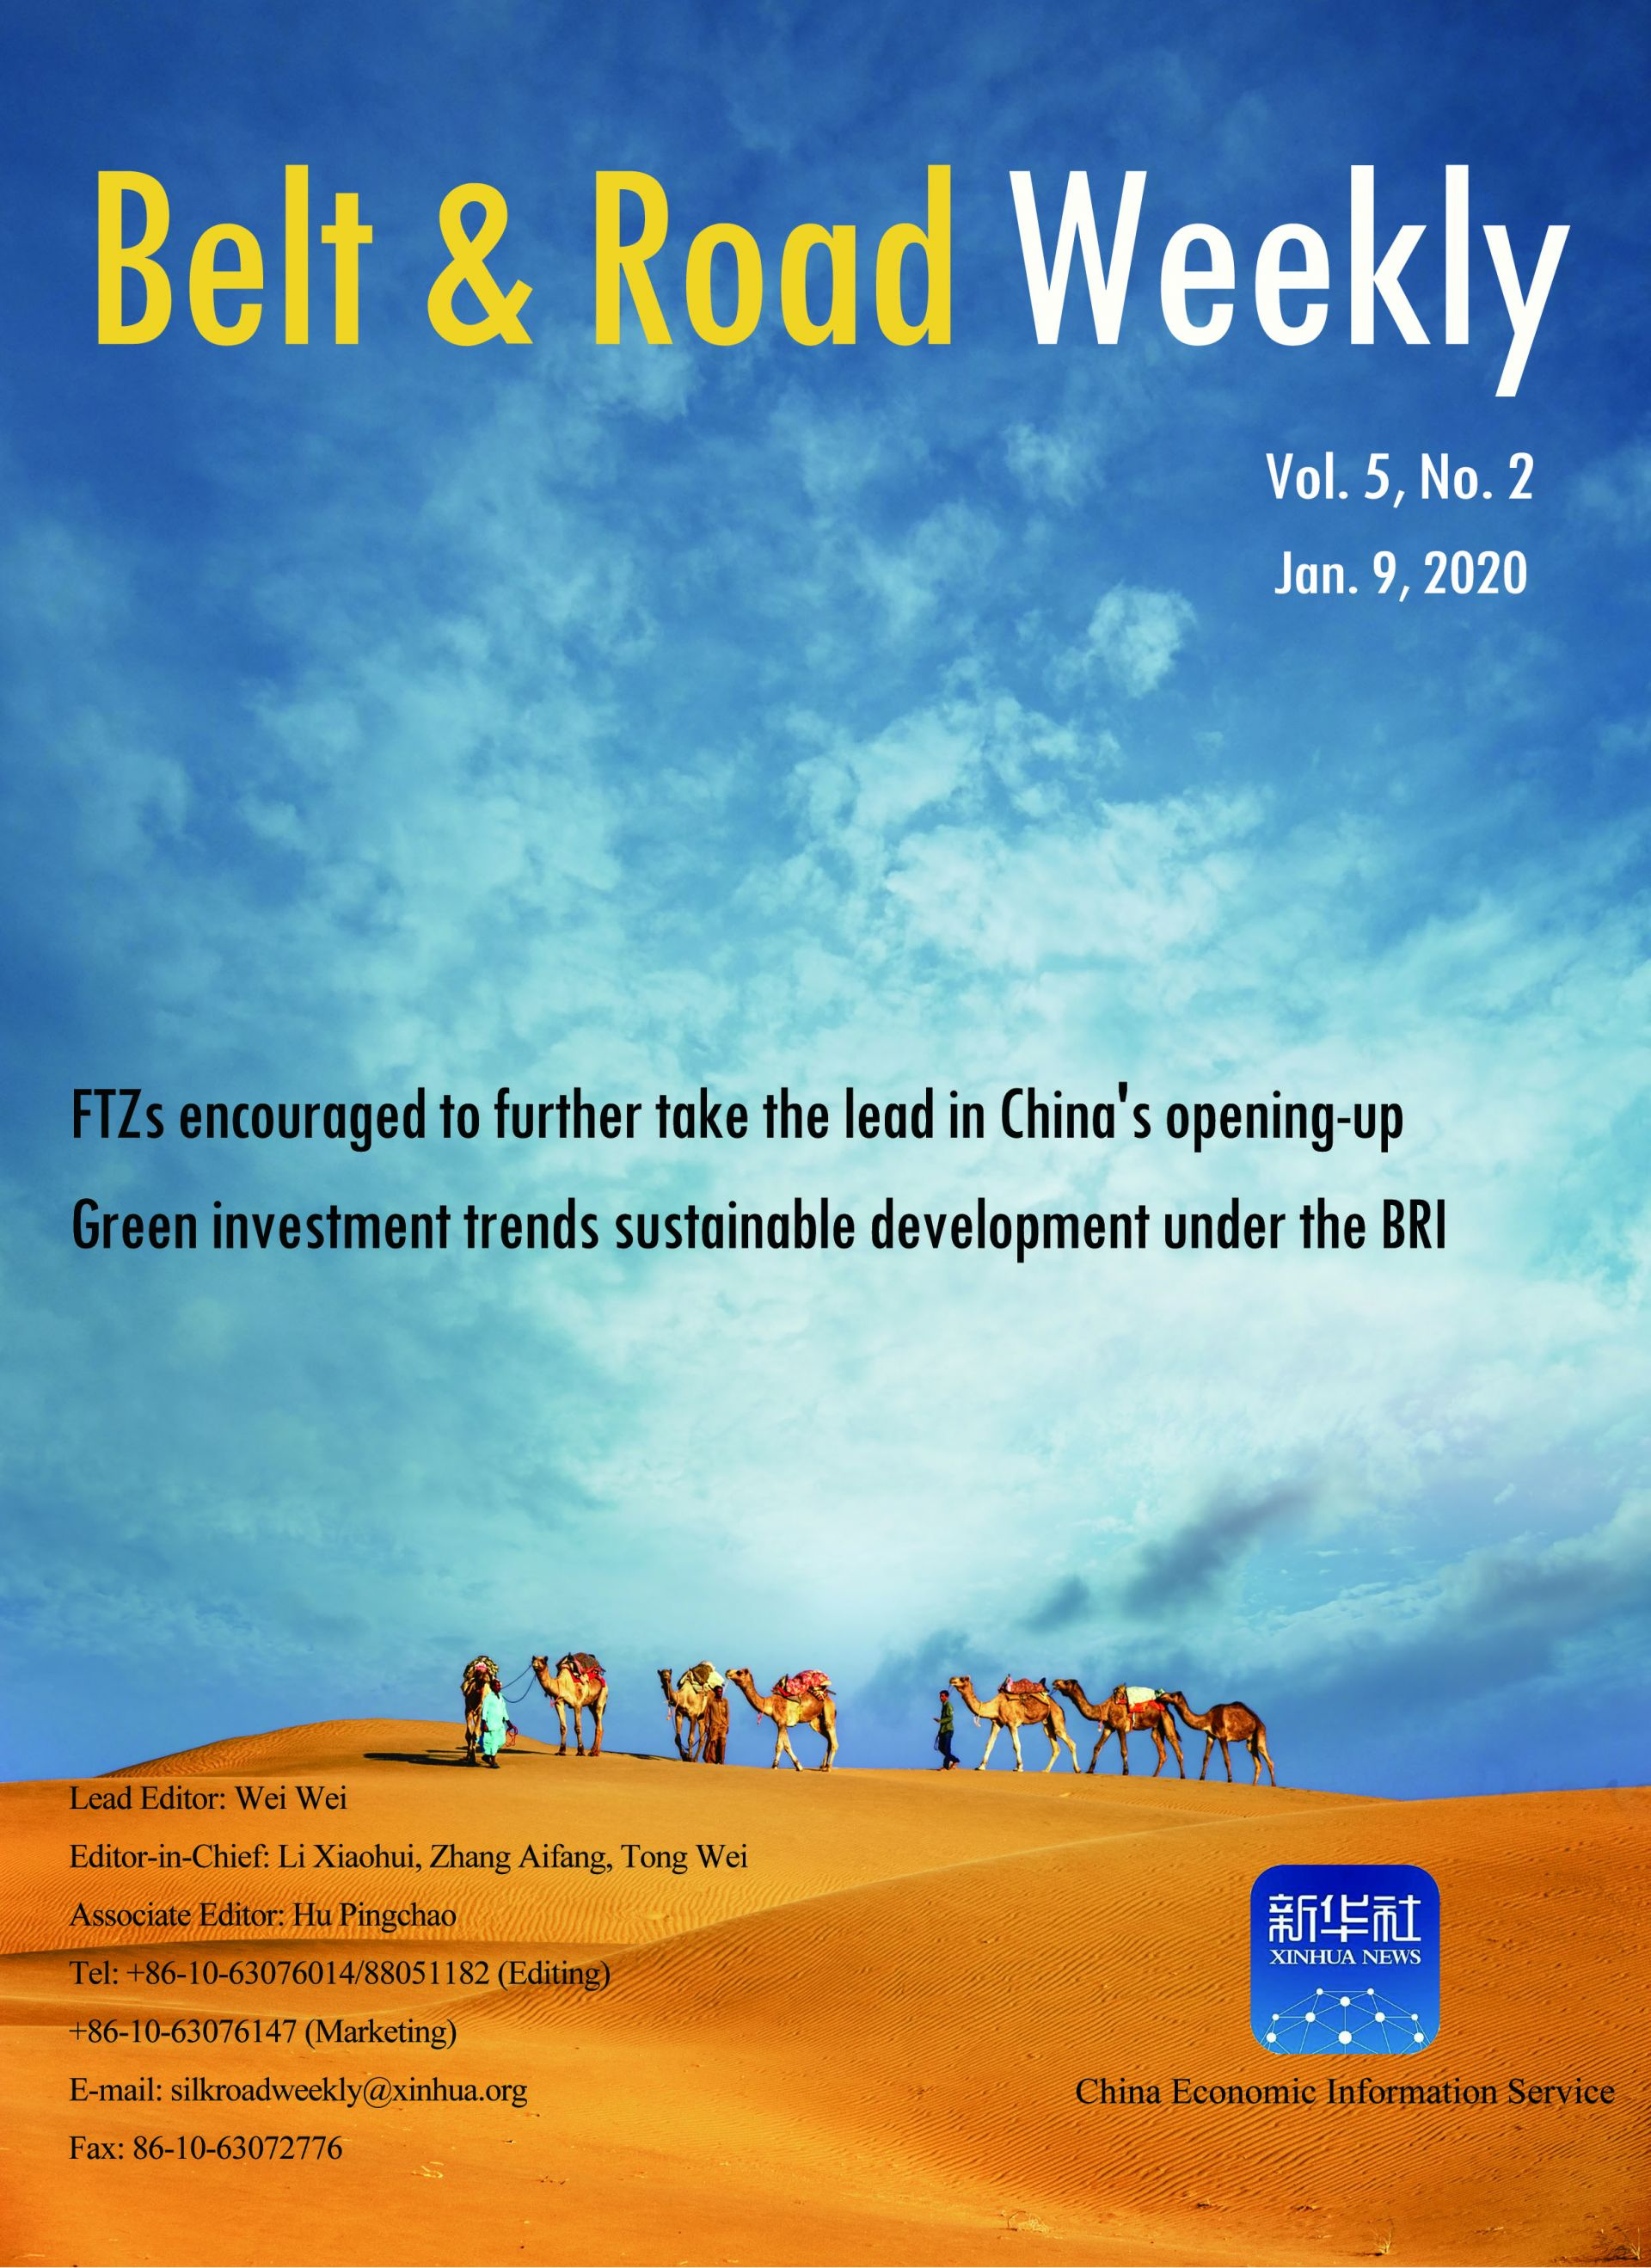 Belt & Road Weekly Vol. 5 No. 2